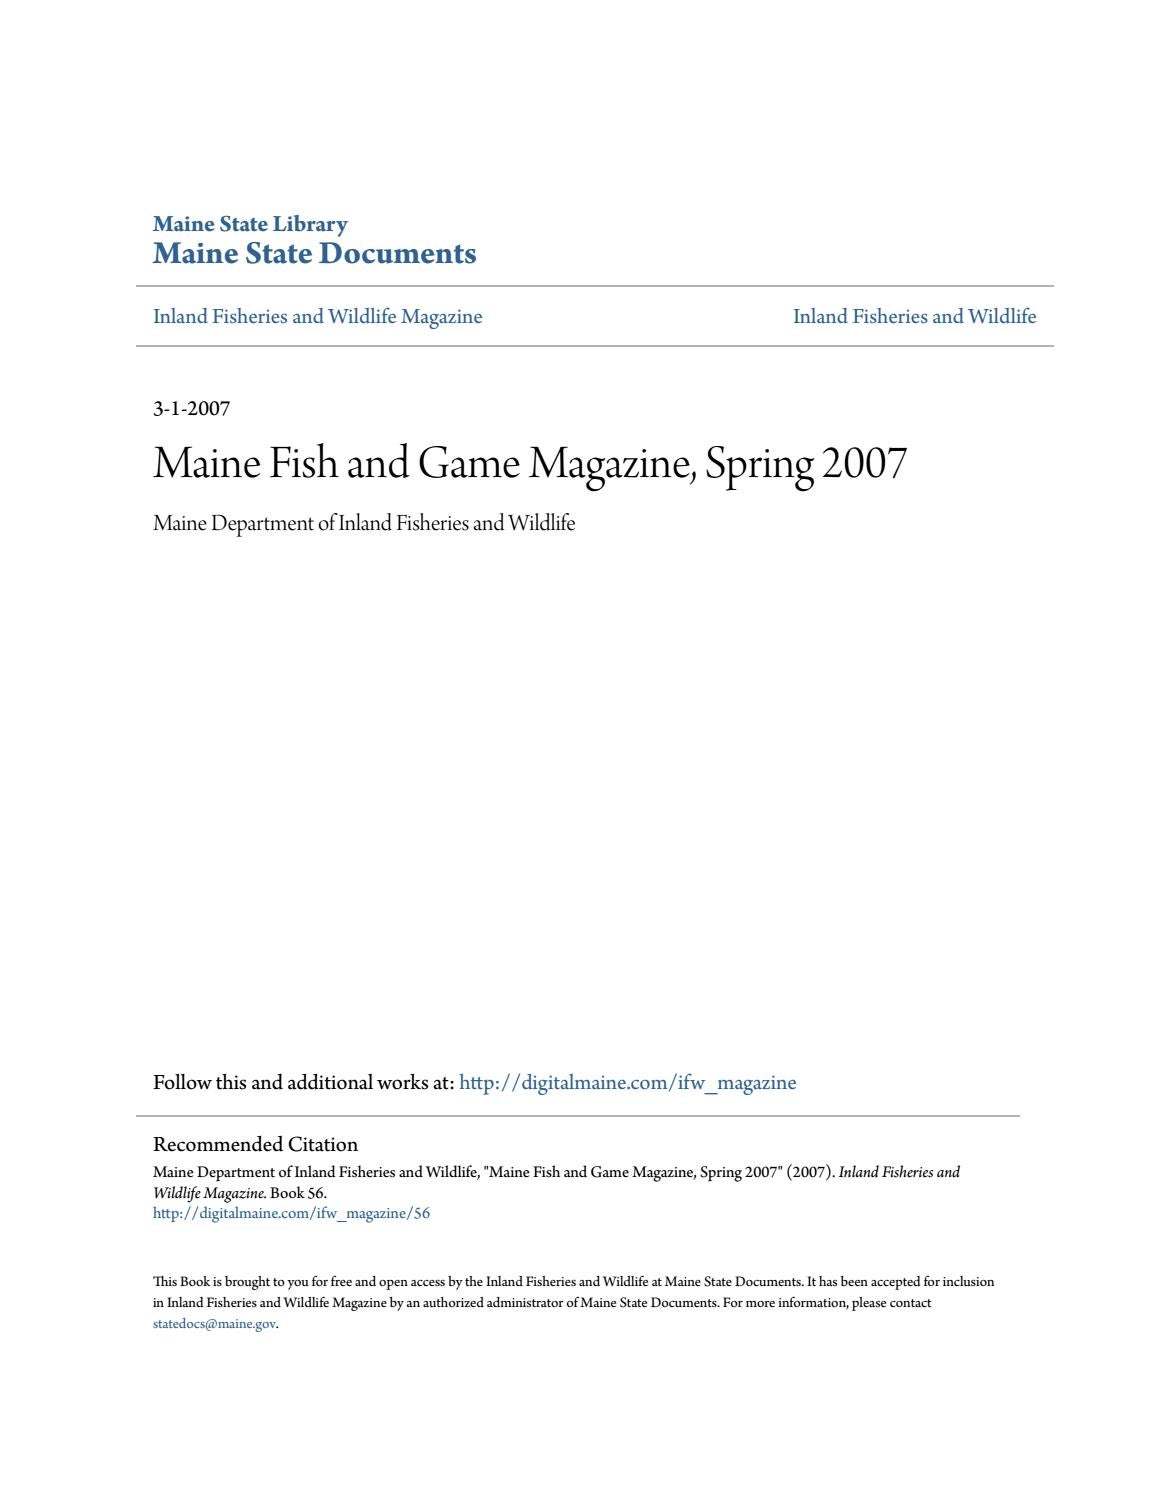 Workbooks tion worksheets printable : Maine Fish and Wildlife Magazine, Spring 2007 by Maine State ...